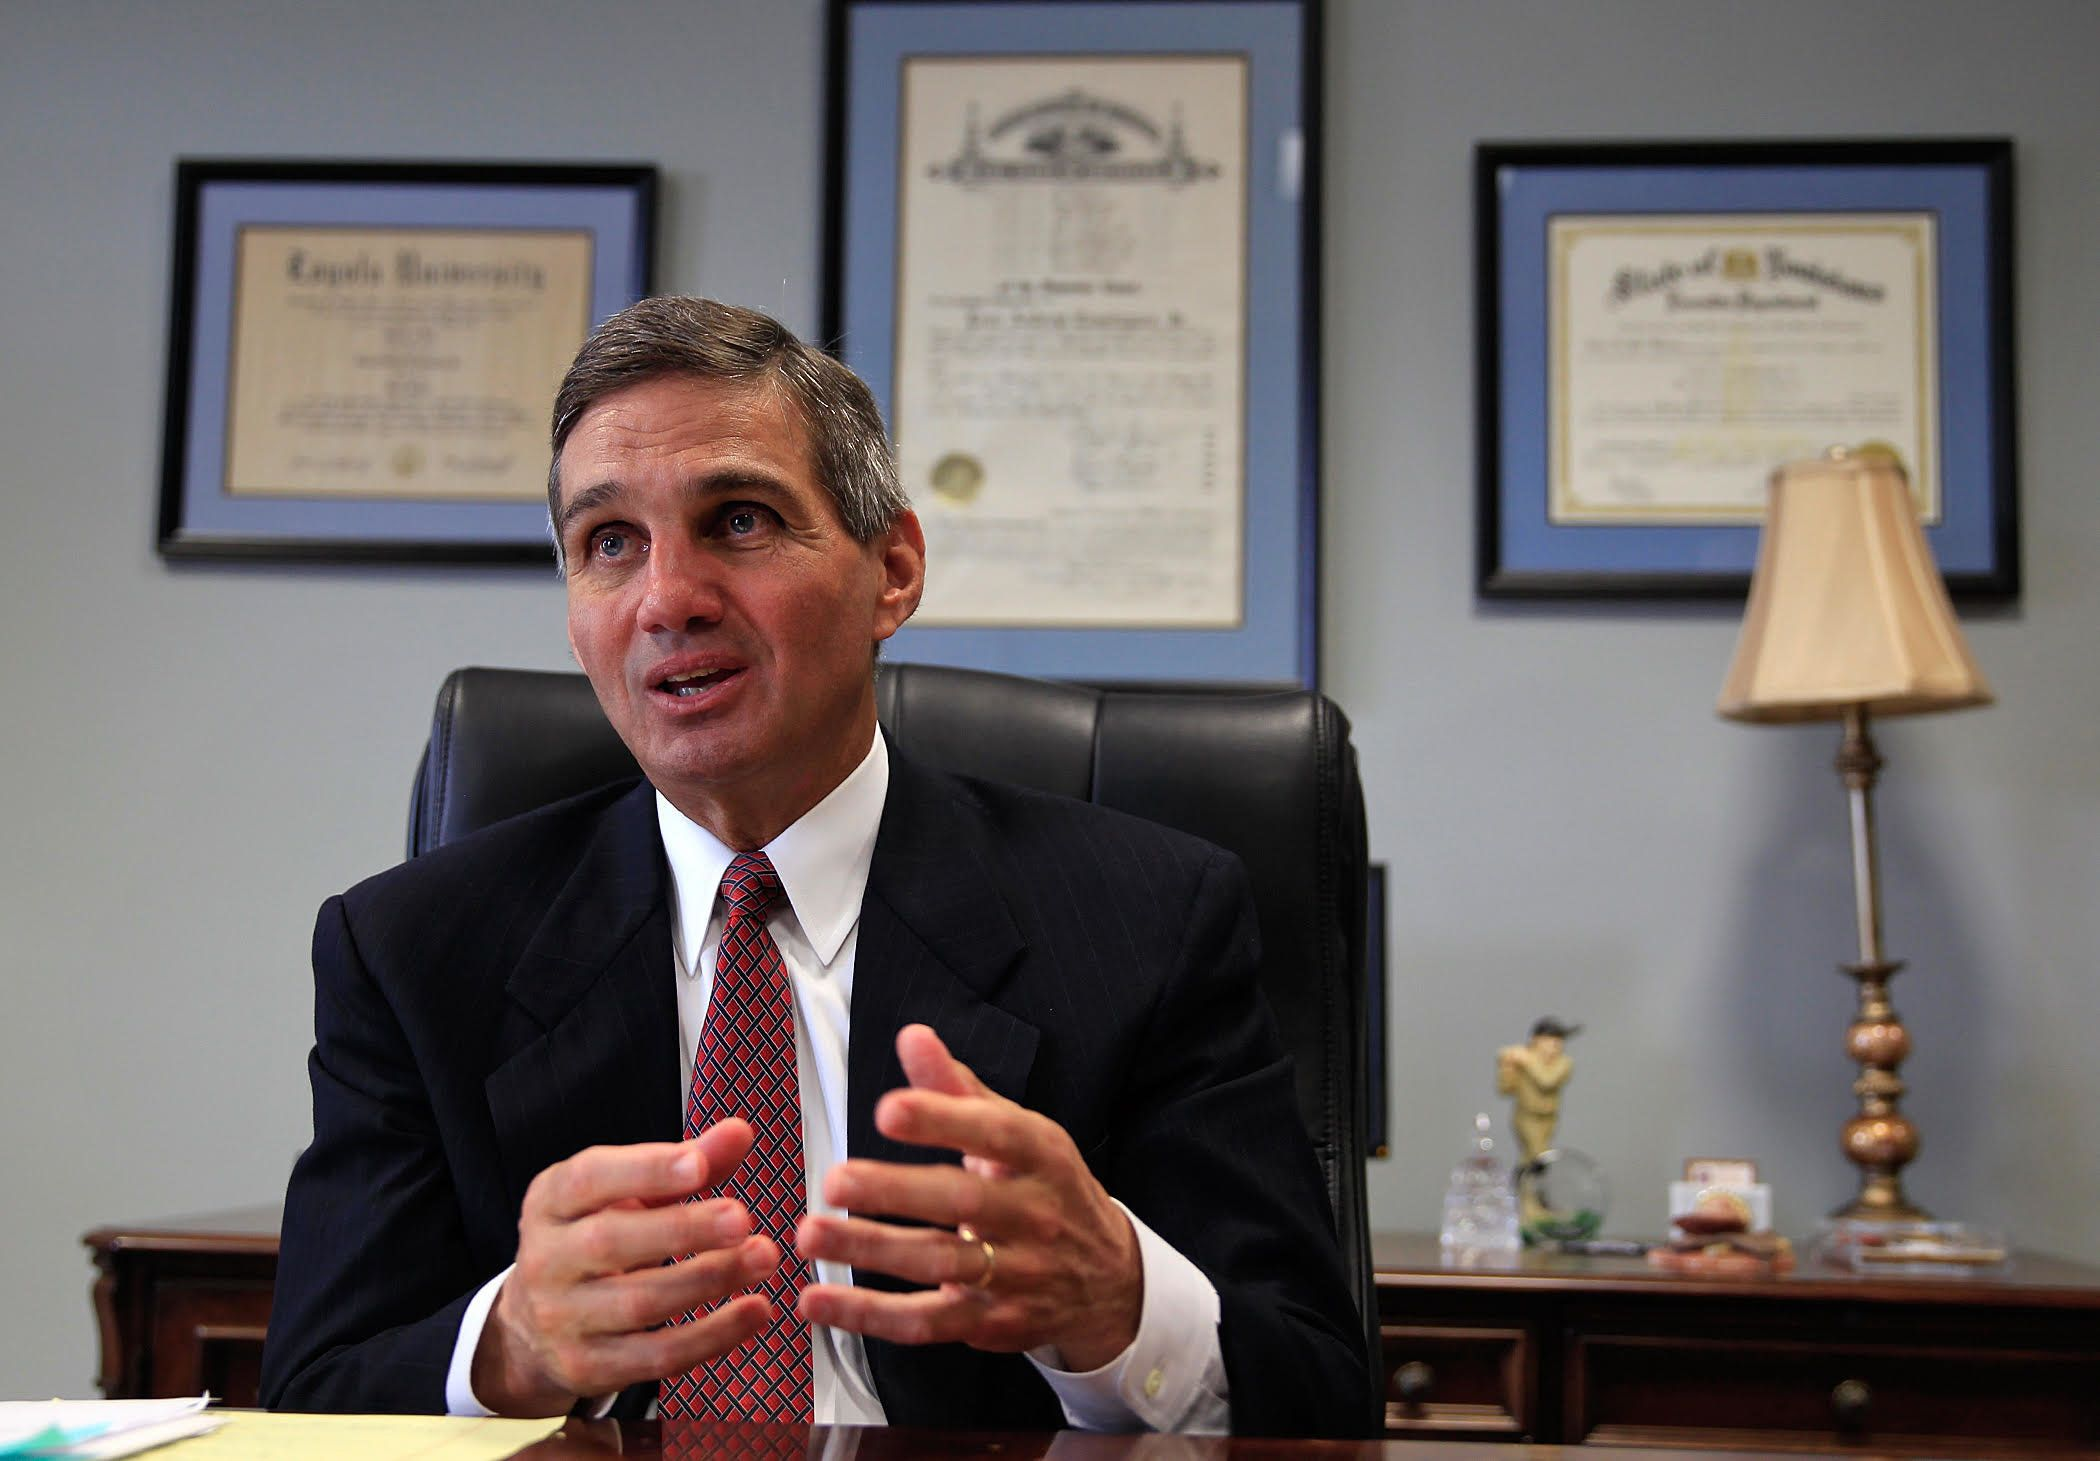 Orleans Parish District Attorney Leon Cannizzaro, pictured here on April 6, 2015, now faces a lawsuit from the ACLU and